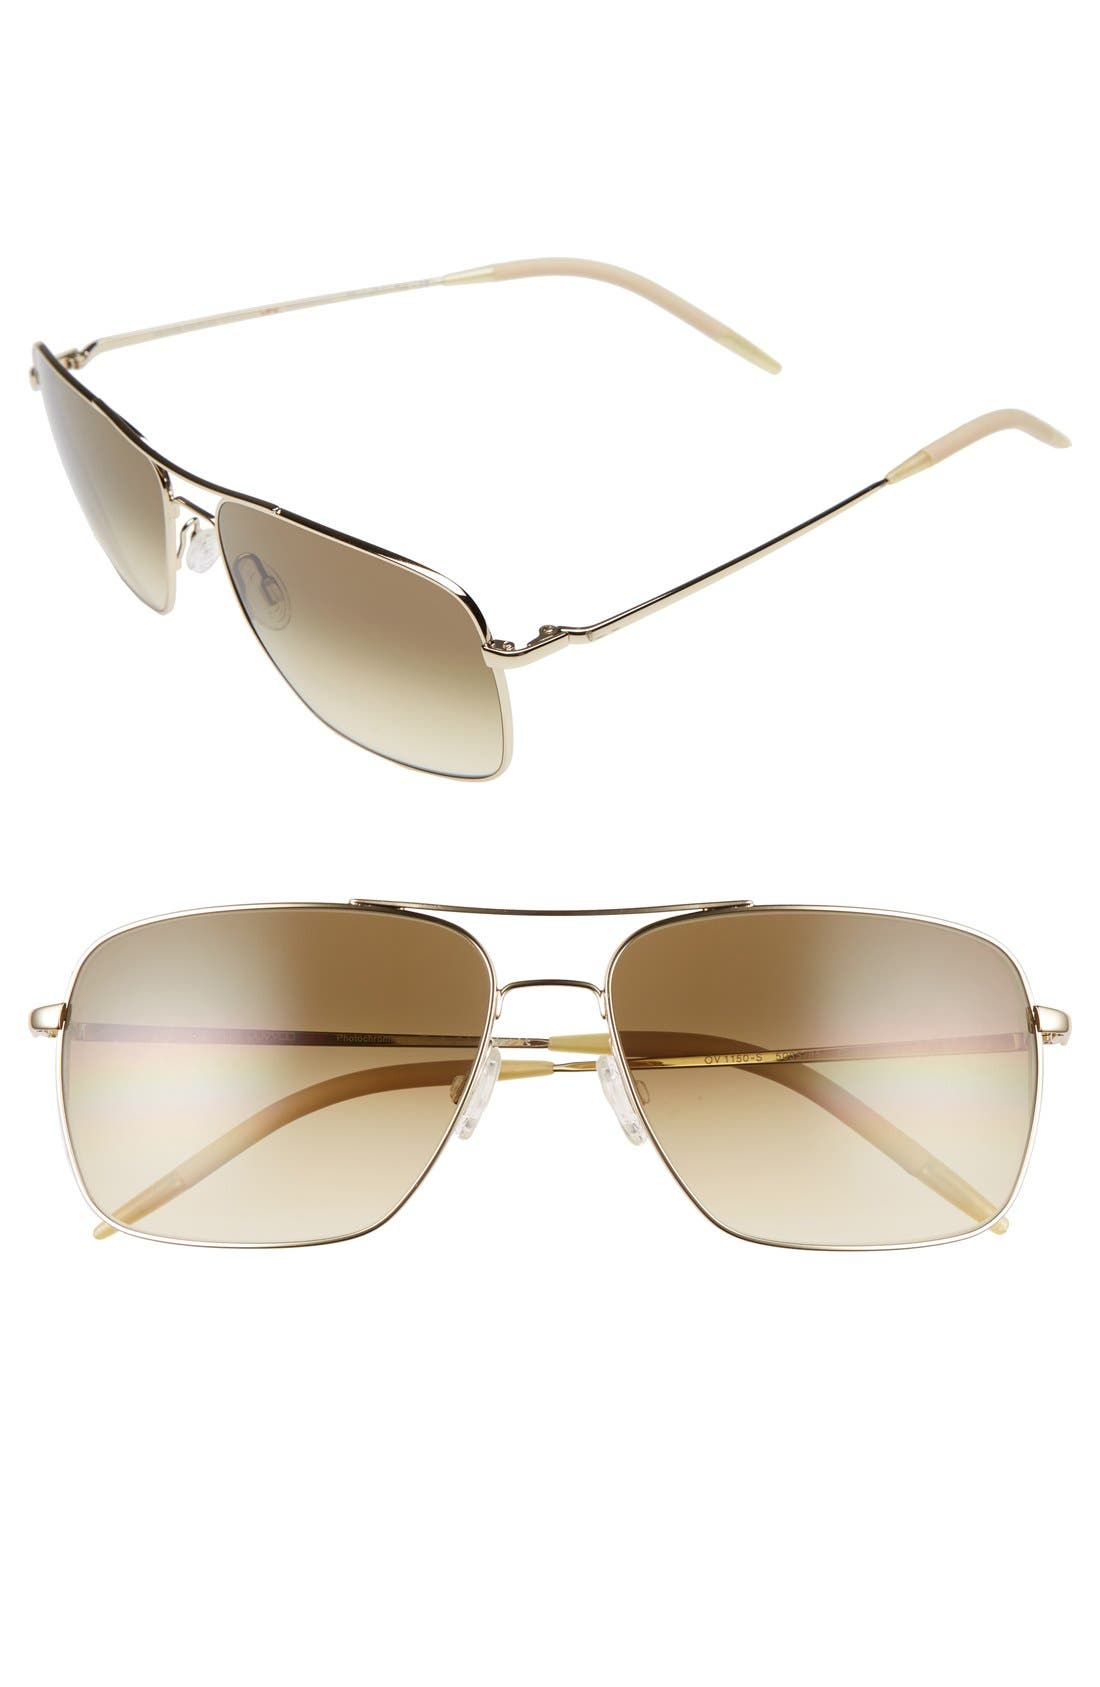 Main Image - Oliver Peoples Clifton 58mm Aviator Sunglasses